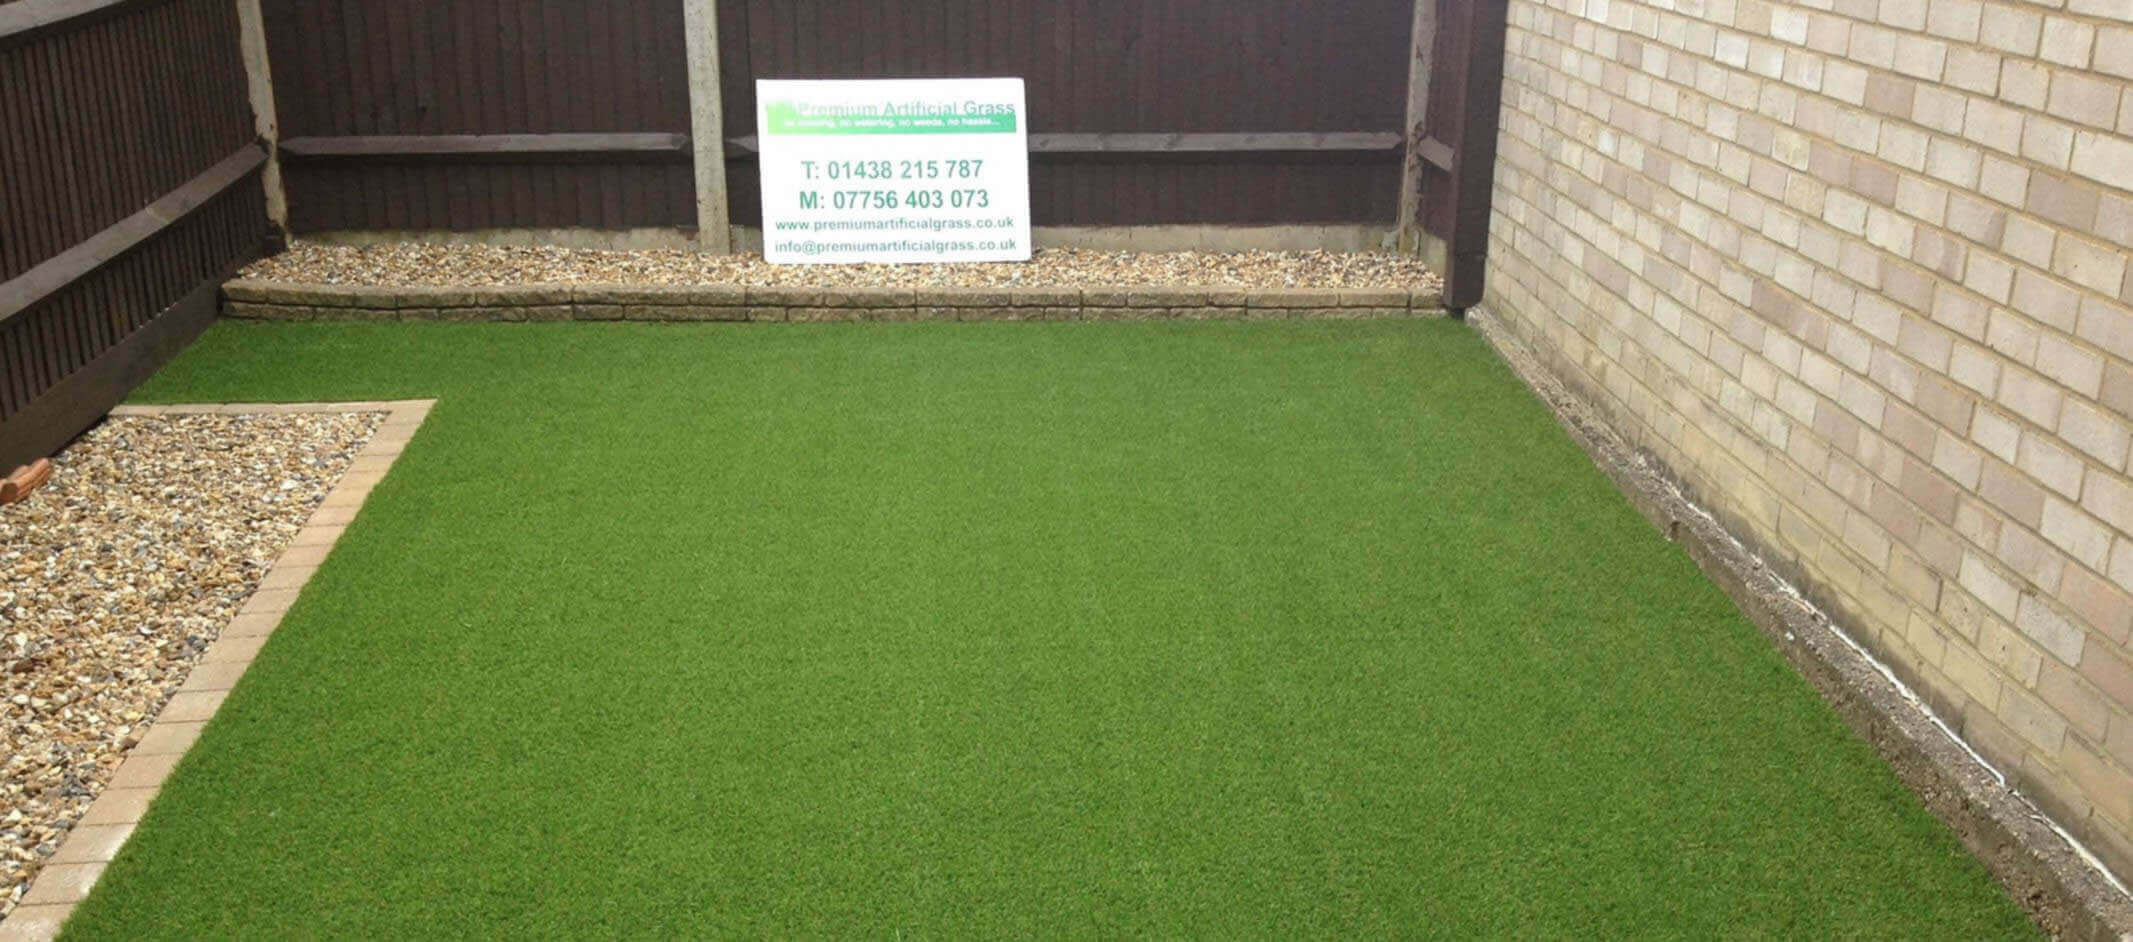 Artificial carpet in Hertfordshire - Premium Artificial Grass